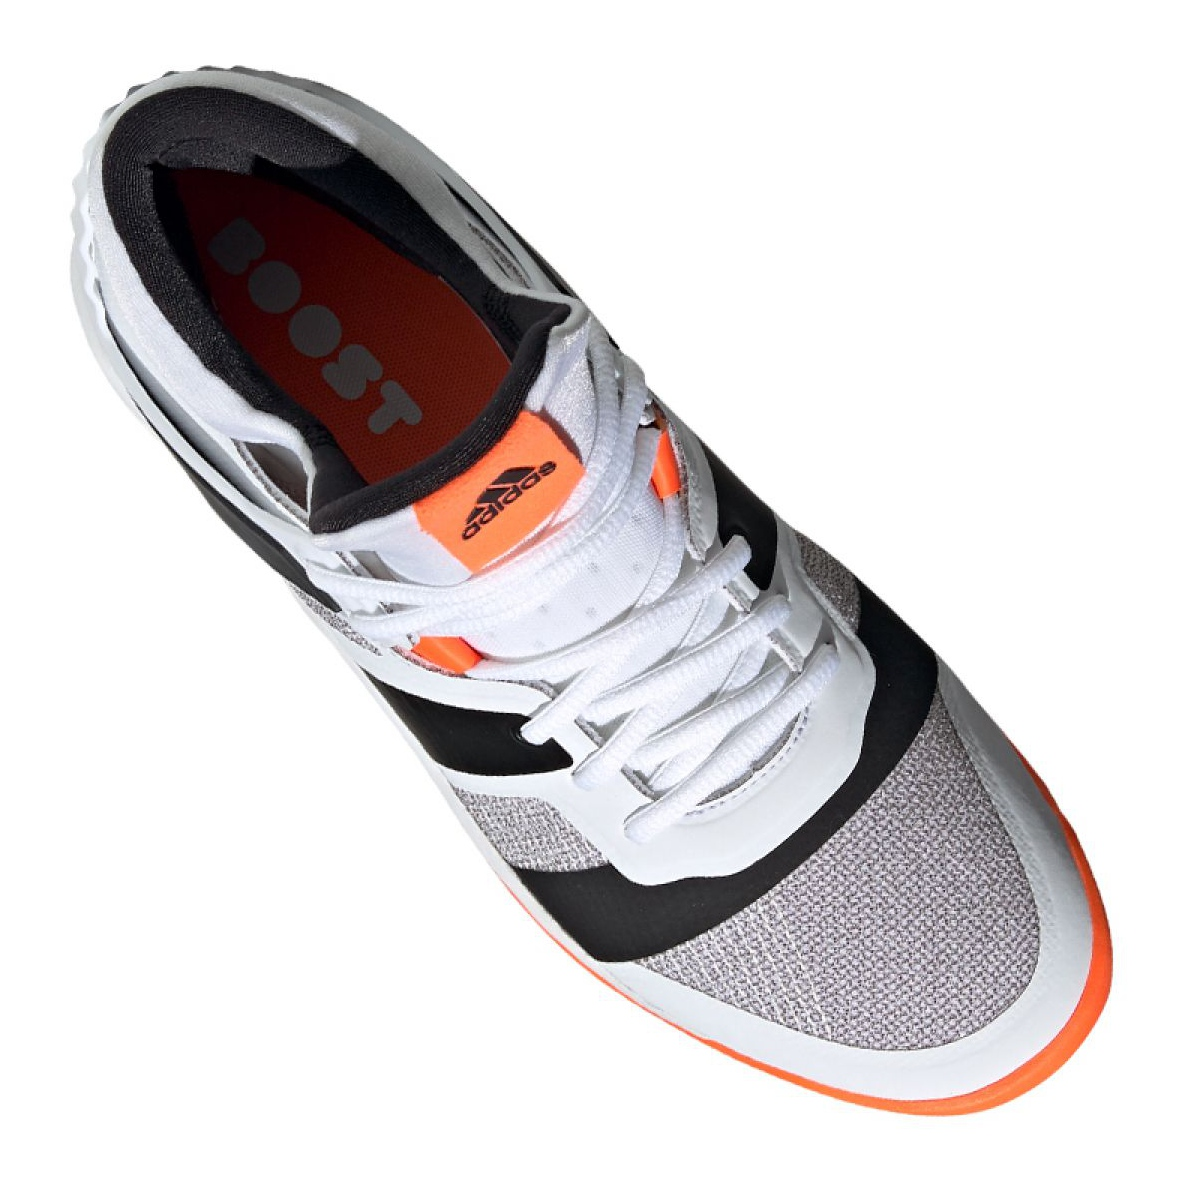 Mid F33827 About Stabil Details X M White Adidas Shoes Y7f6vbgy